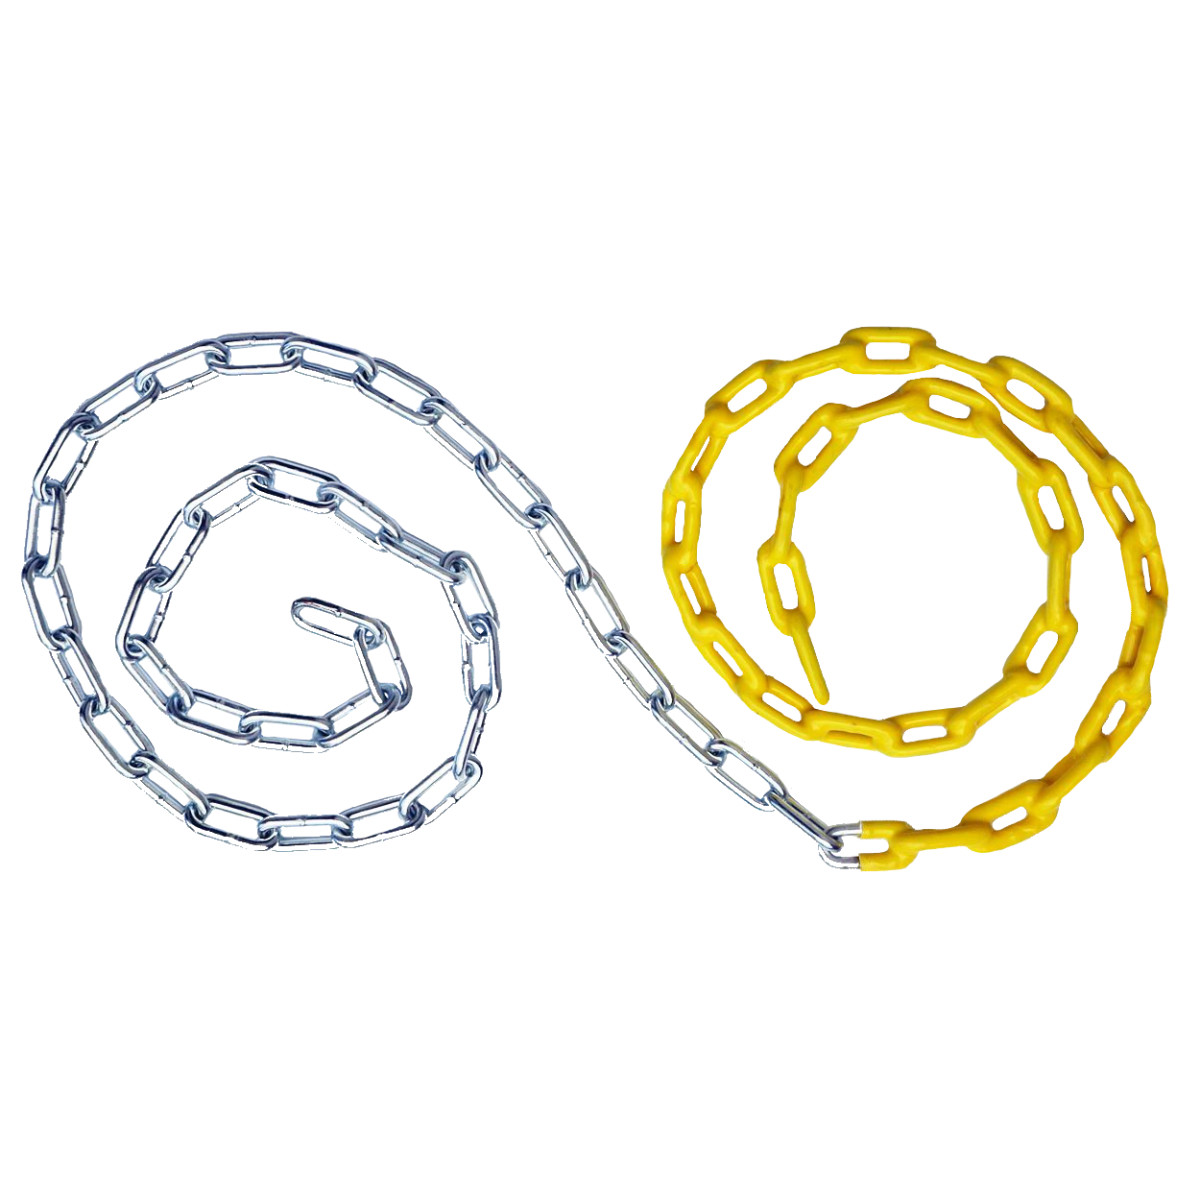 Heavy Duty Swing Chain with Plastisol Coating (H-85X)